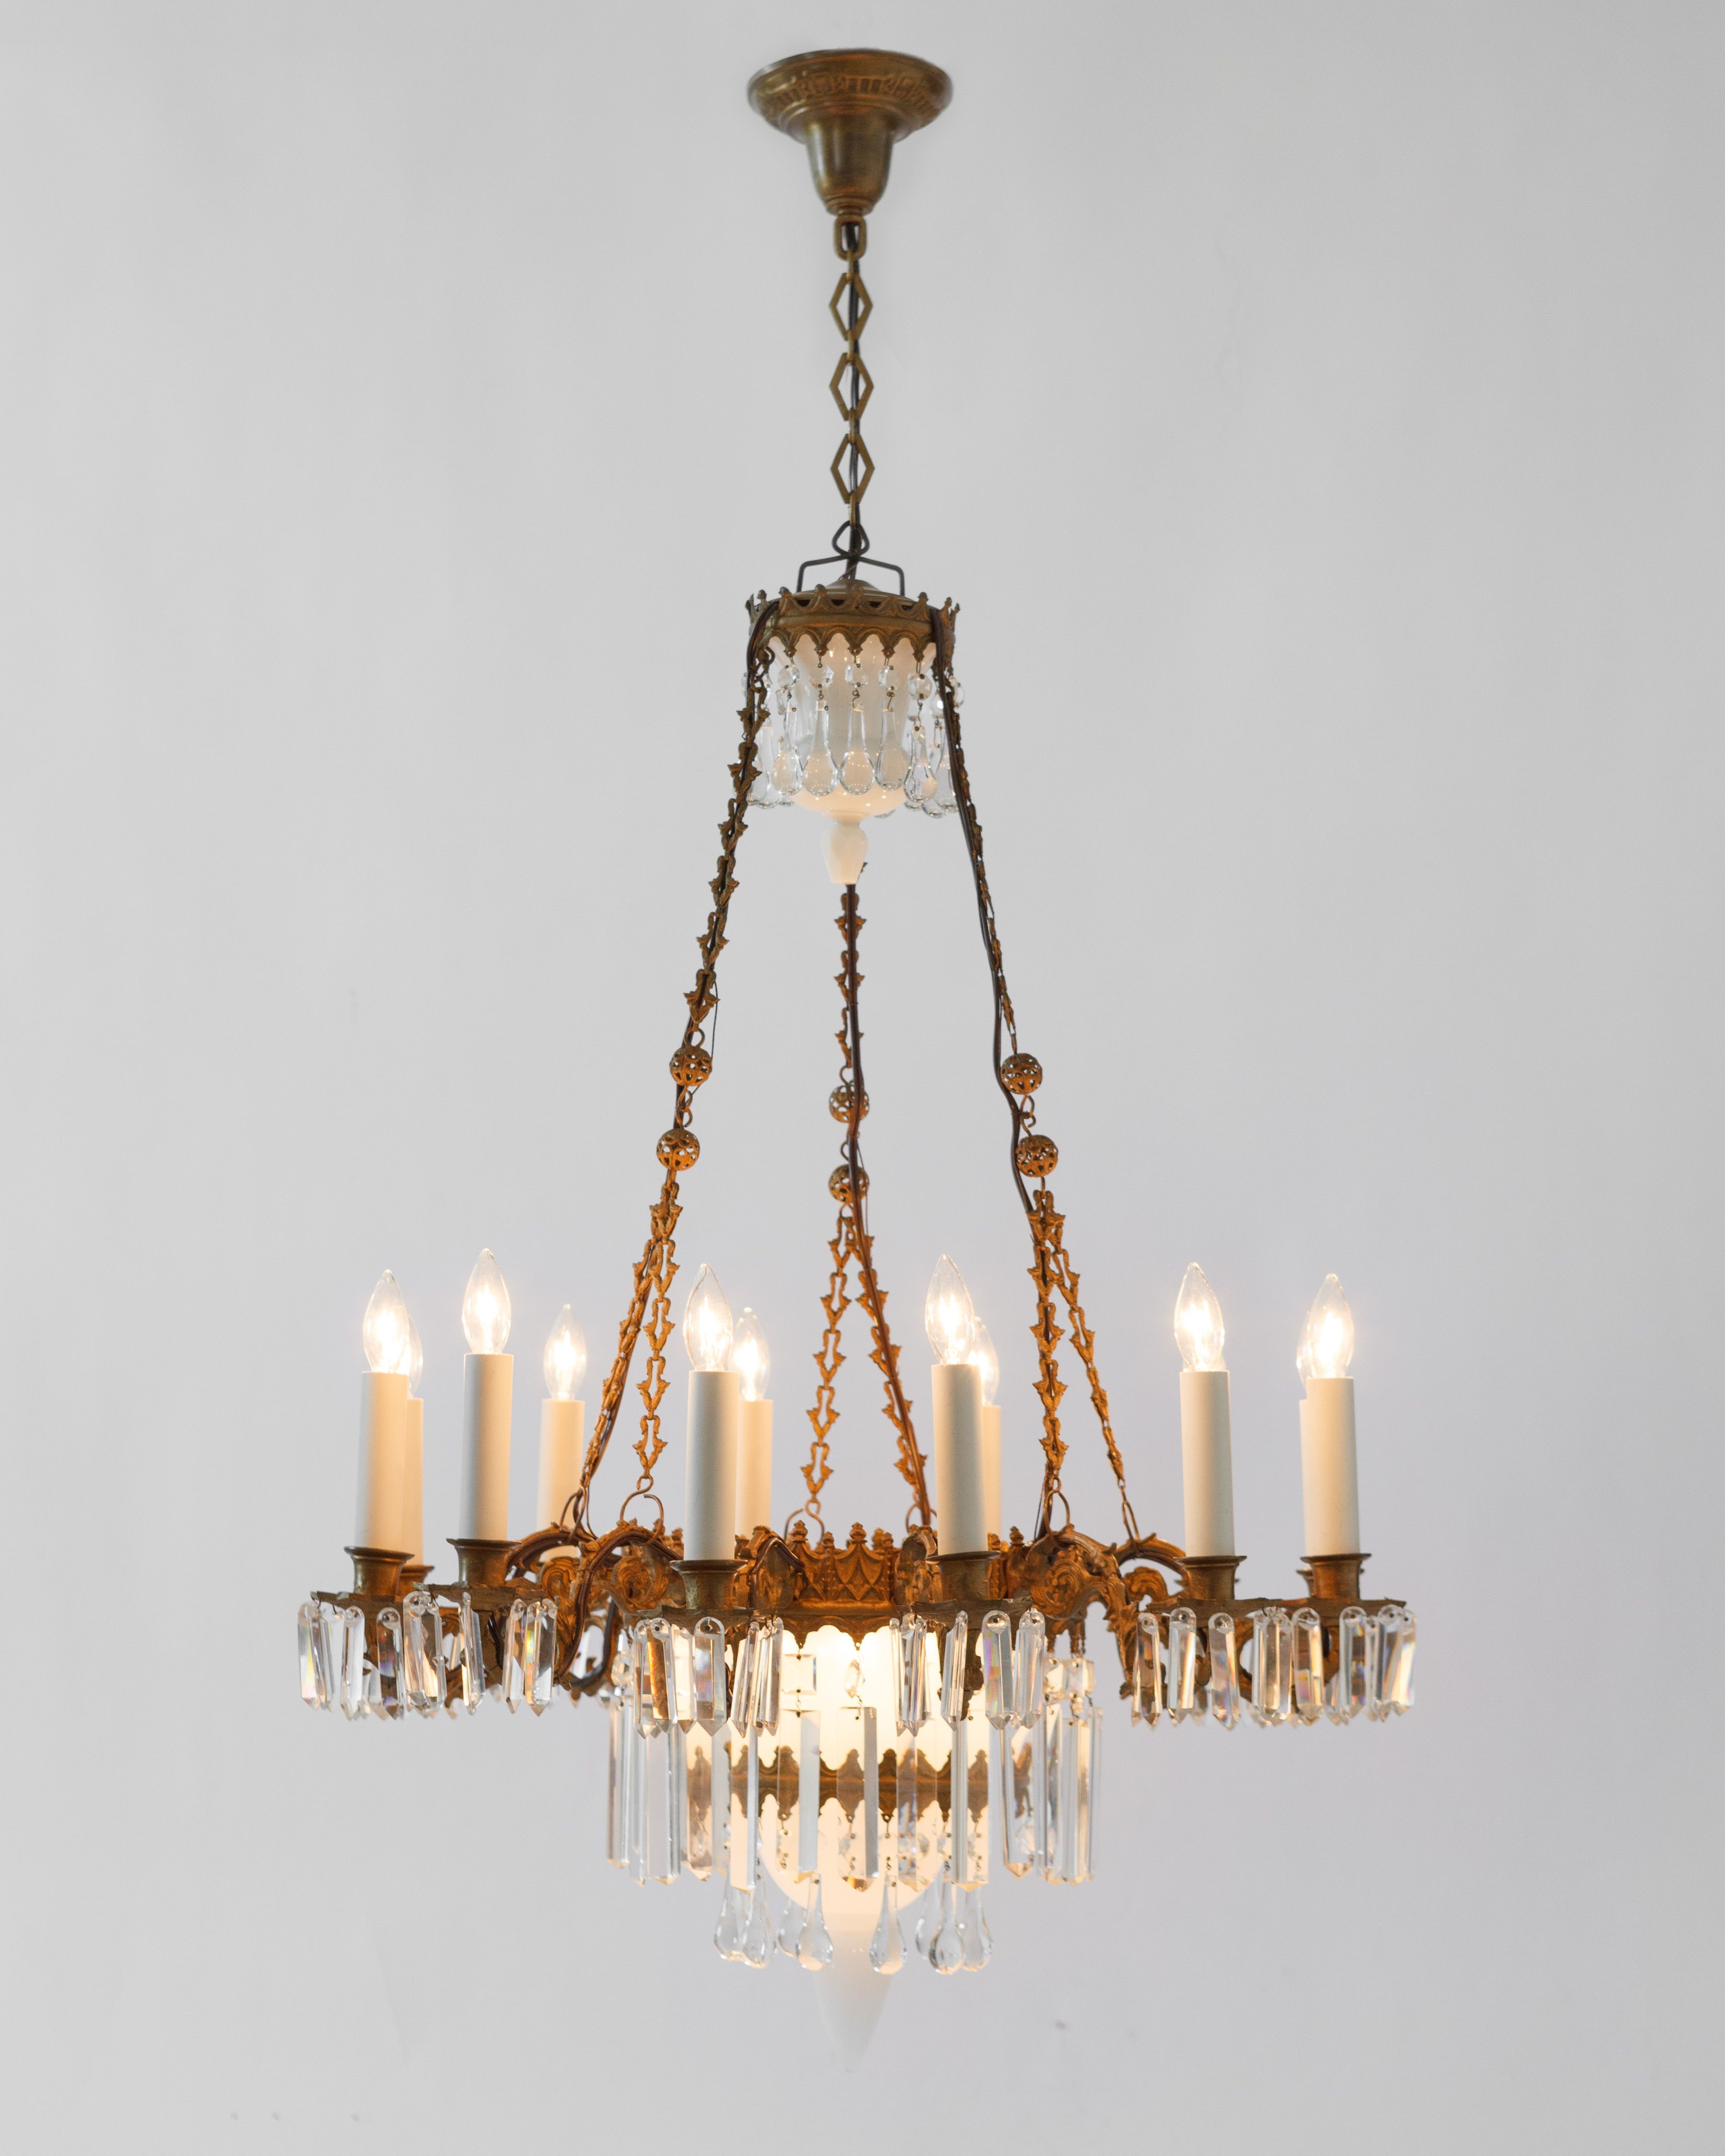 decor light cage milk fitting anthropologie smoked globe tremendous find rose and ceiling lighting chandelier most gold glass fixture wires lights pl geometric black pendant cream